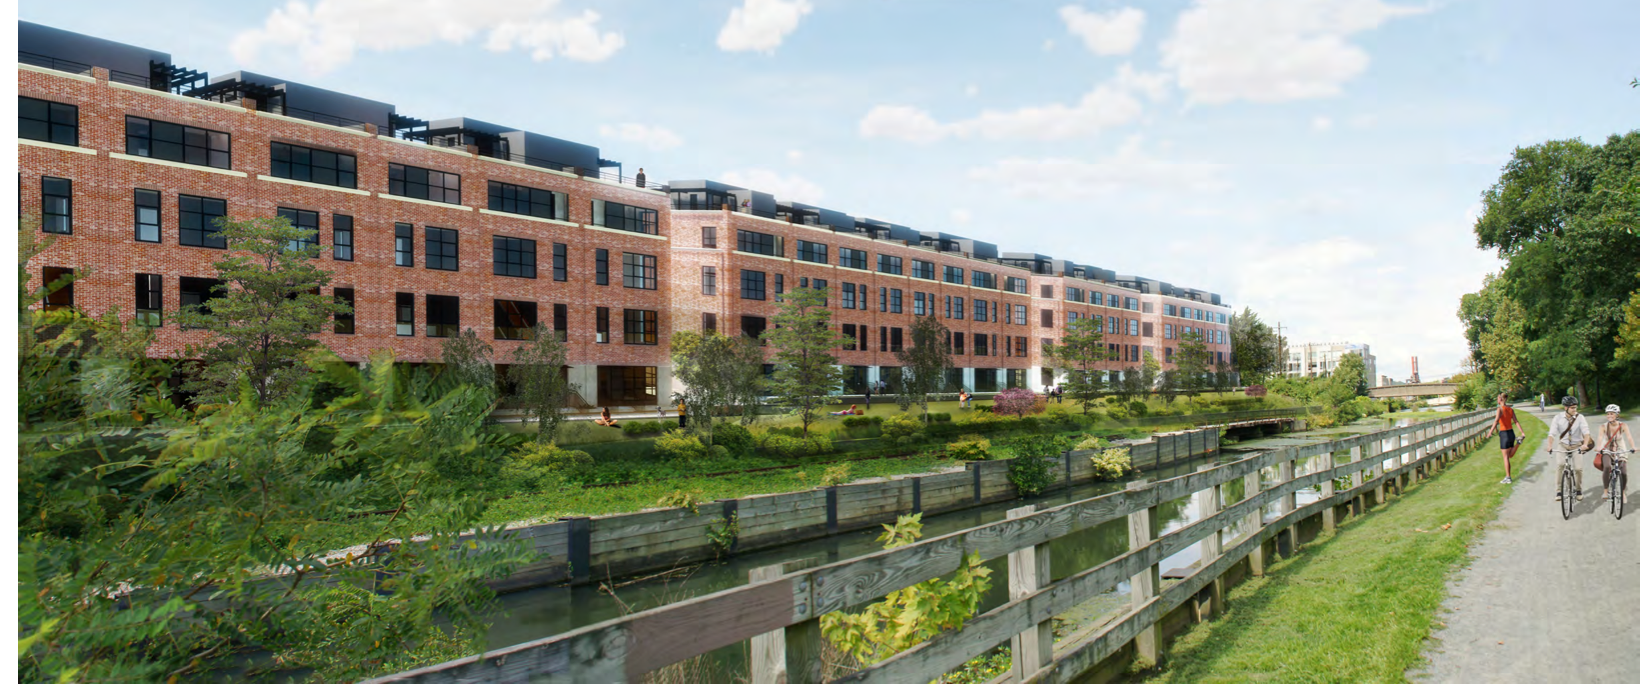 A rendering of the Venice Island development from the Manayunk towpath.